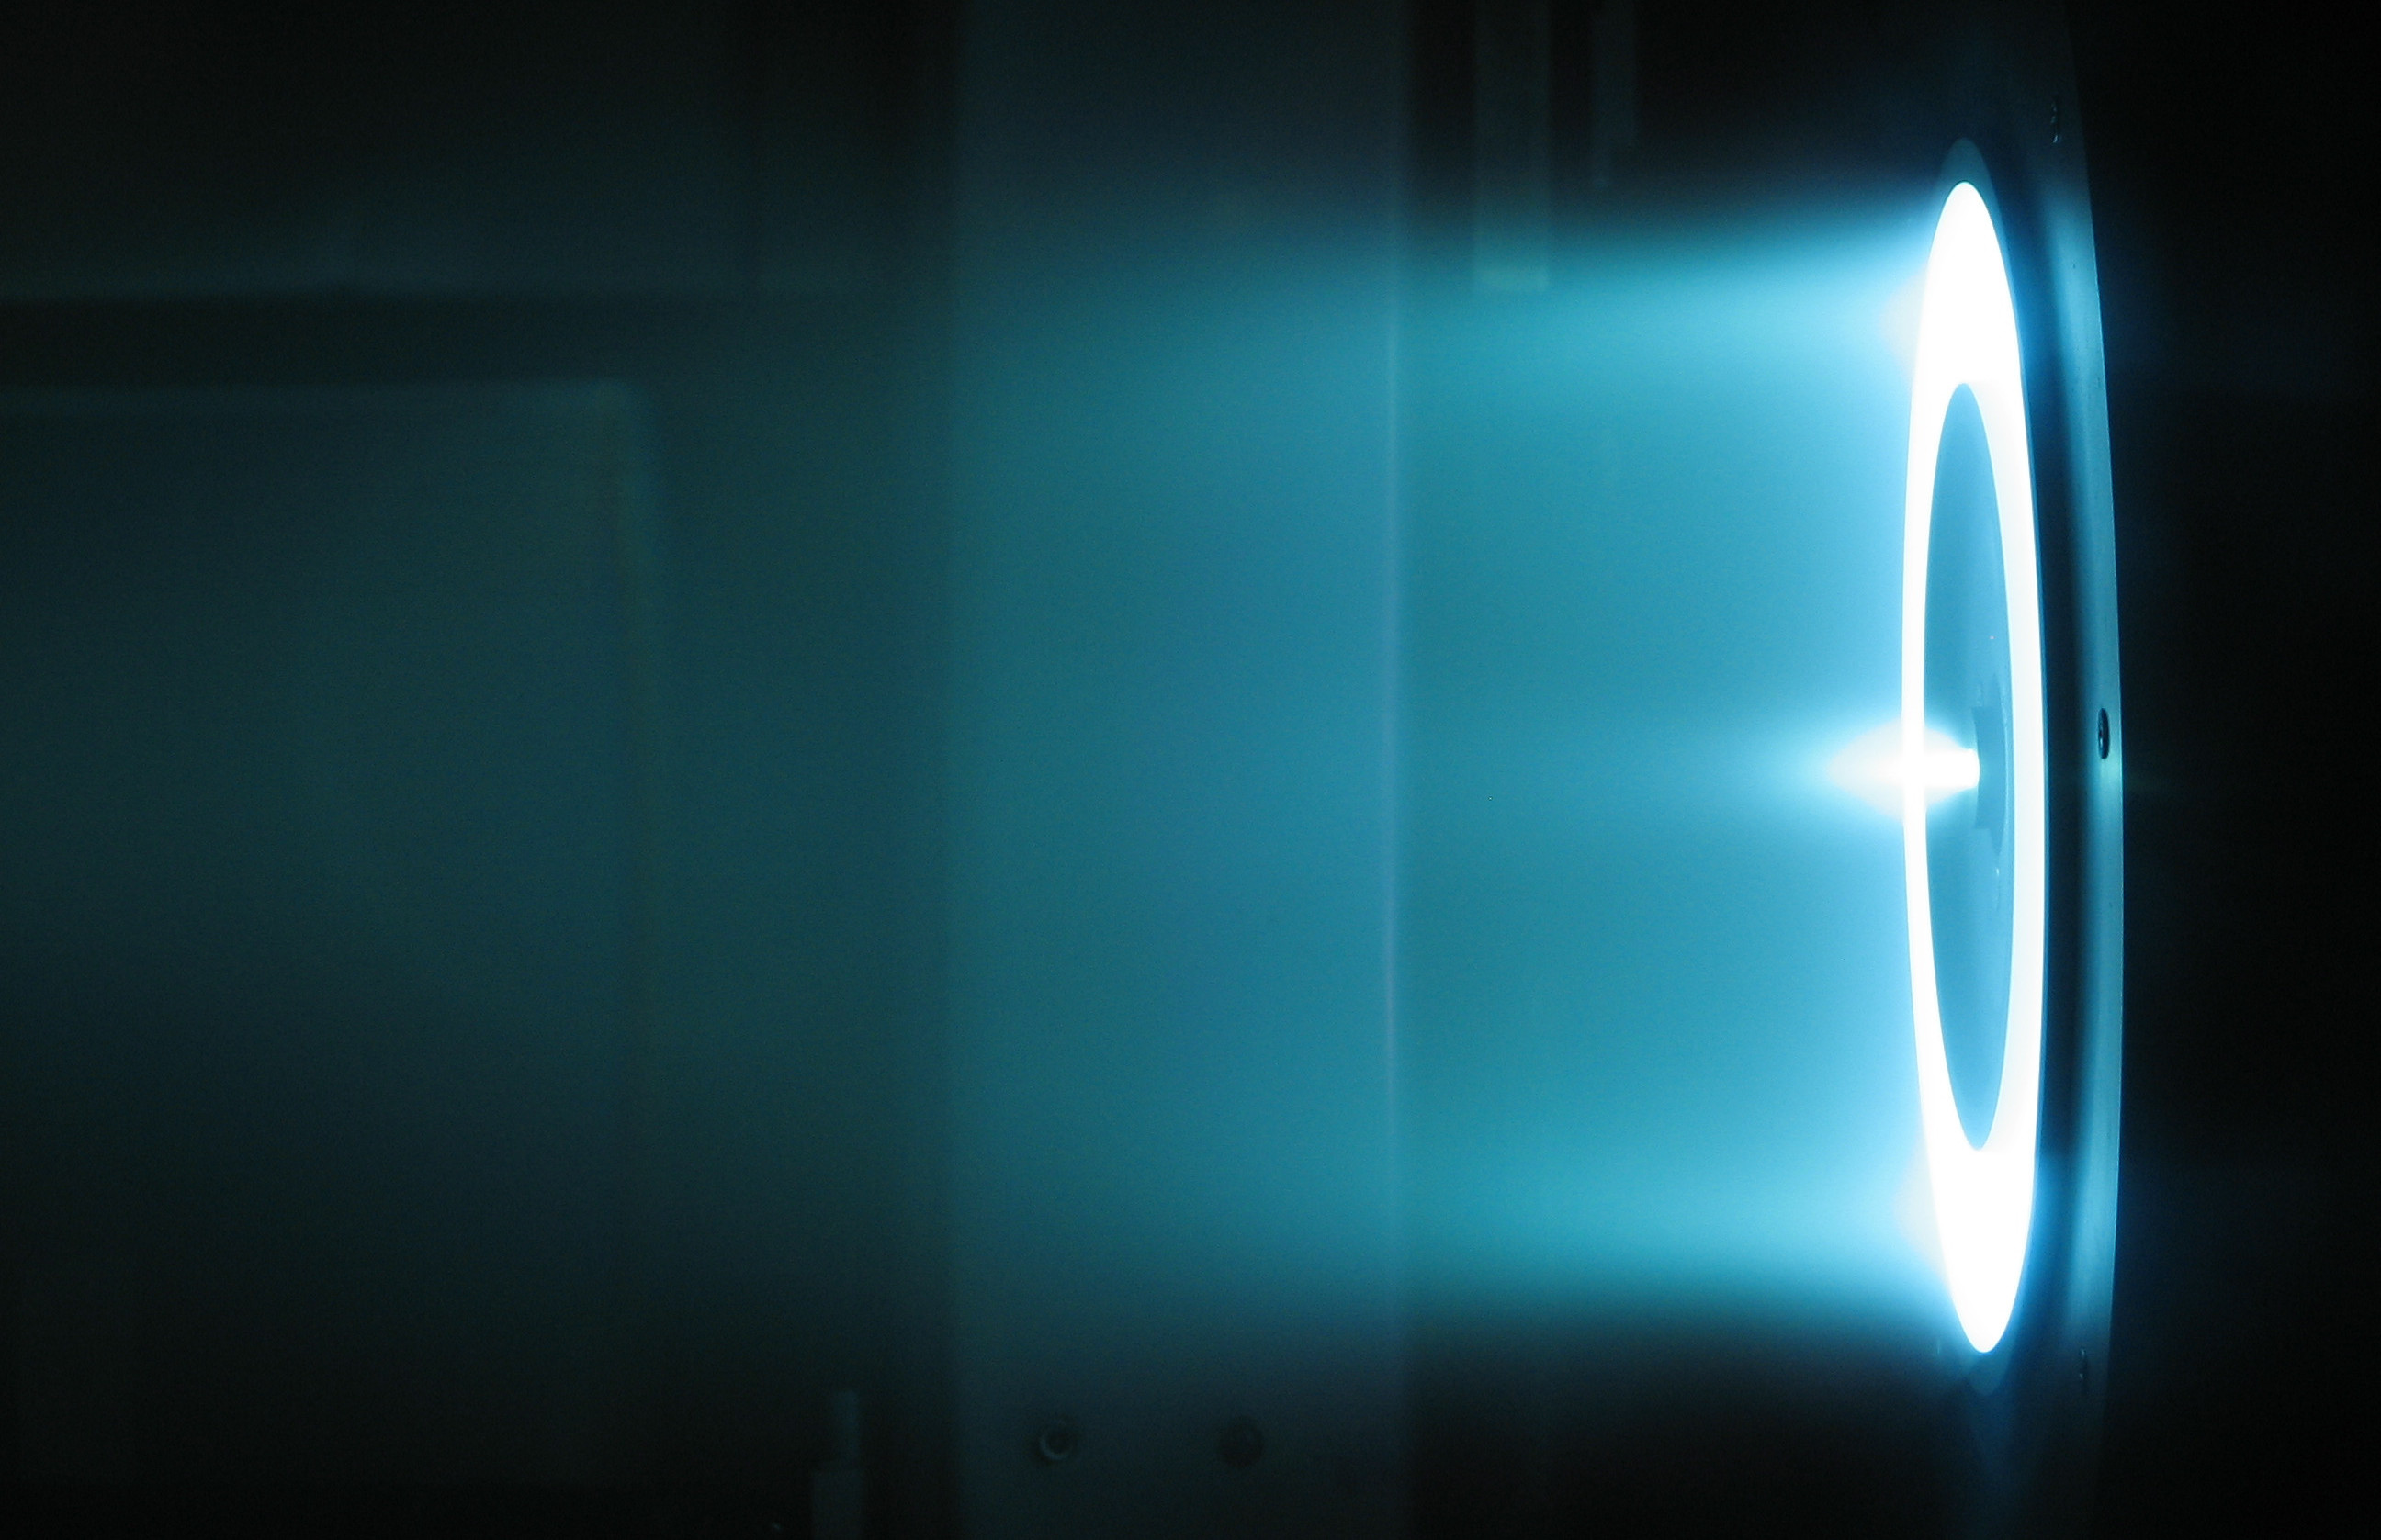 Electrically powered spacecraft propulsion - Wikipedia